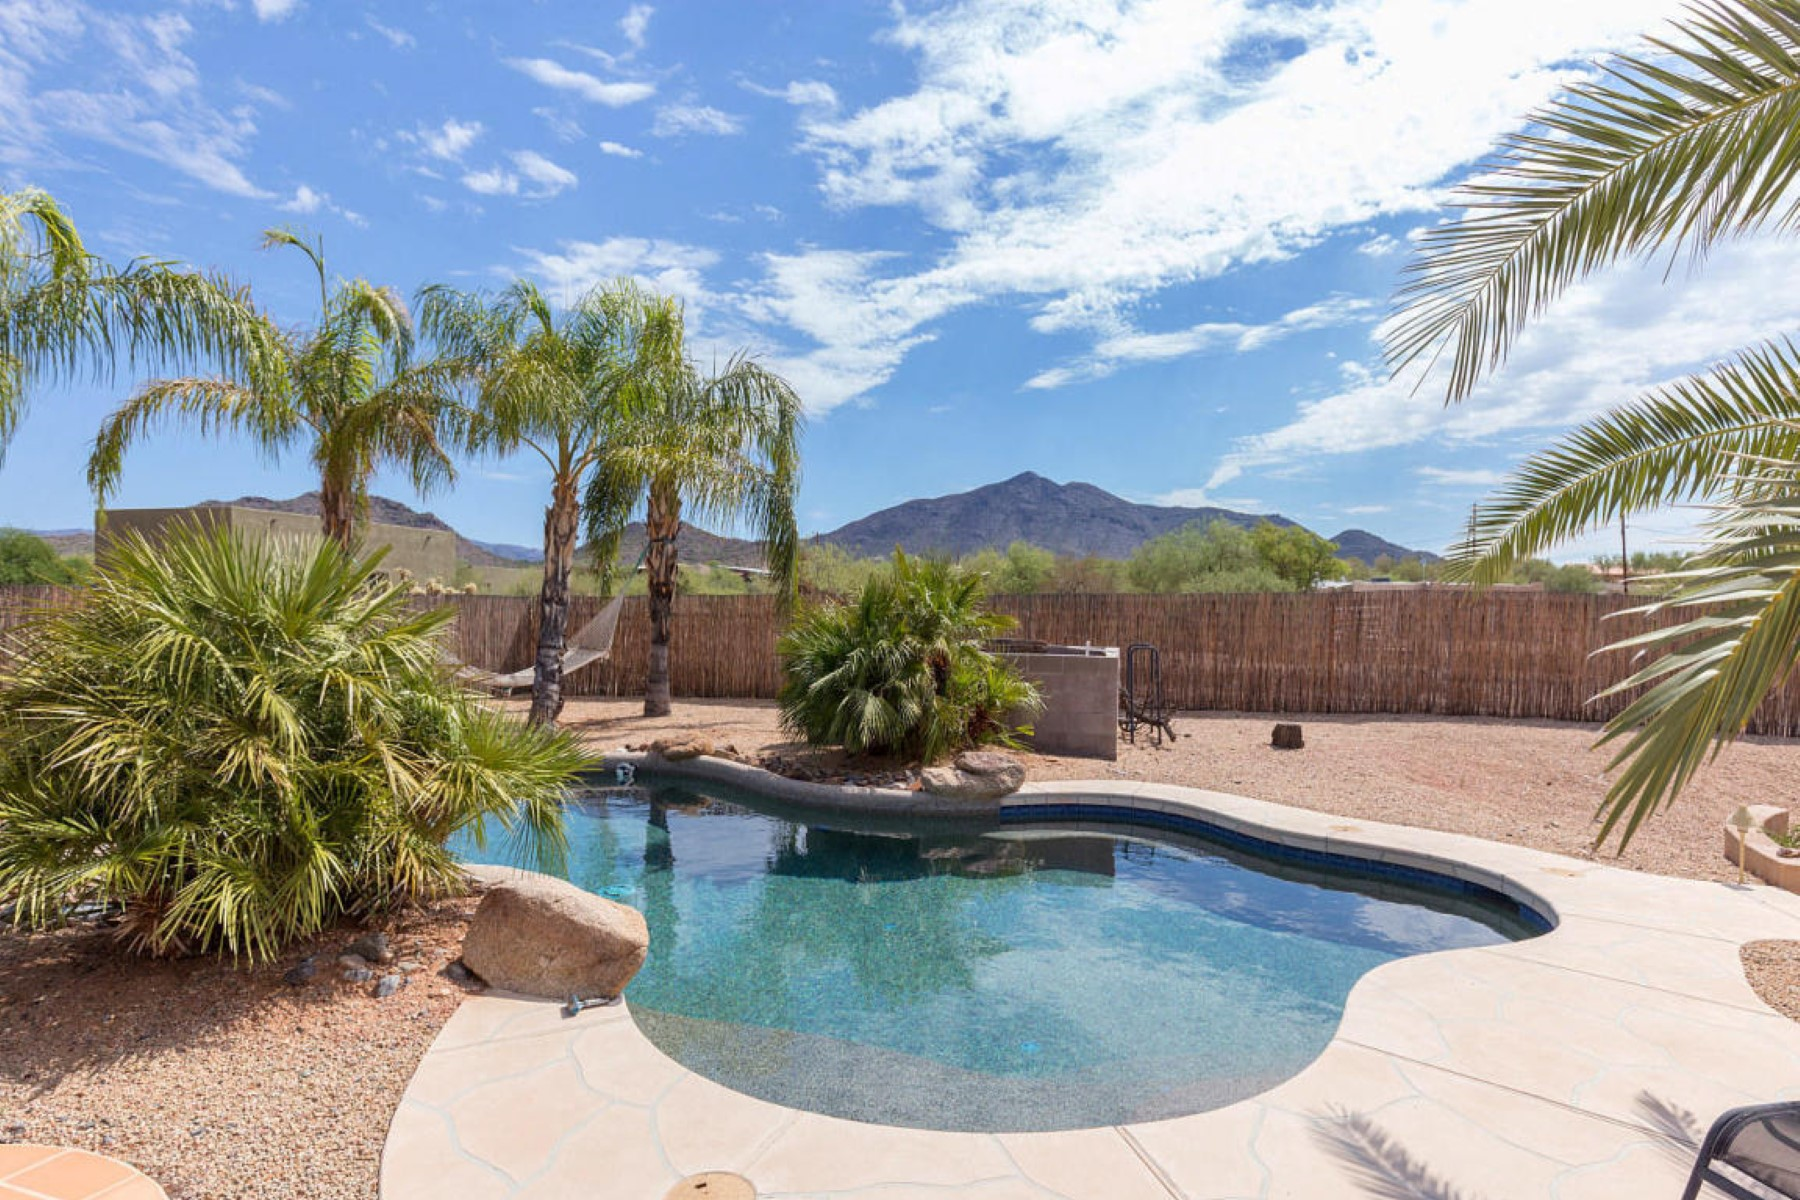 Single Family Home for Sale at Lovey southwest spanish style home 35815 N 50th St Cave Creek, Arizona, 85331 United States